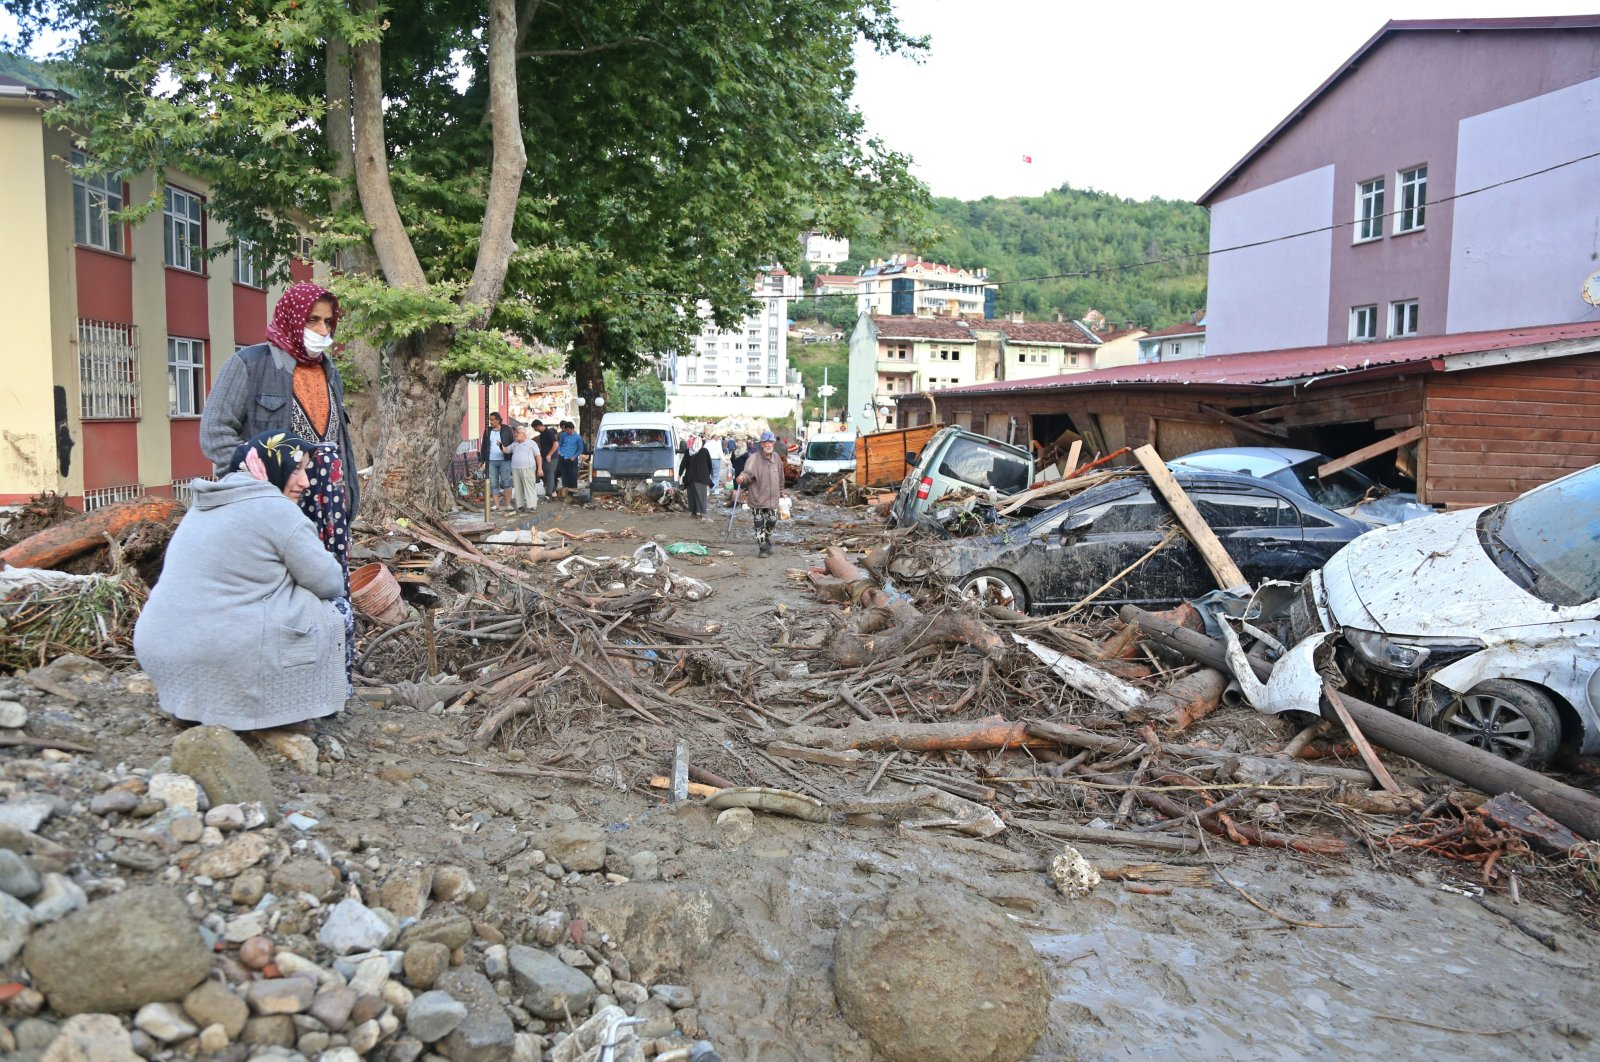 People inspect the debris and destruction caused by floods in the Bozkurt district of Kastamonu province, northern Turkey, Aug. 12, 2021. (İHA PHOTO)